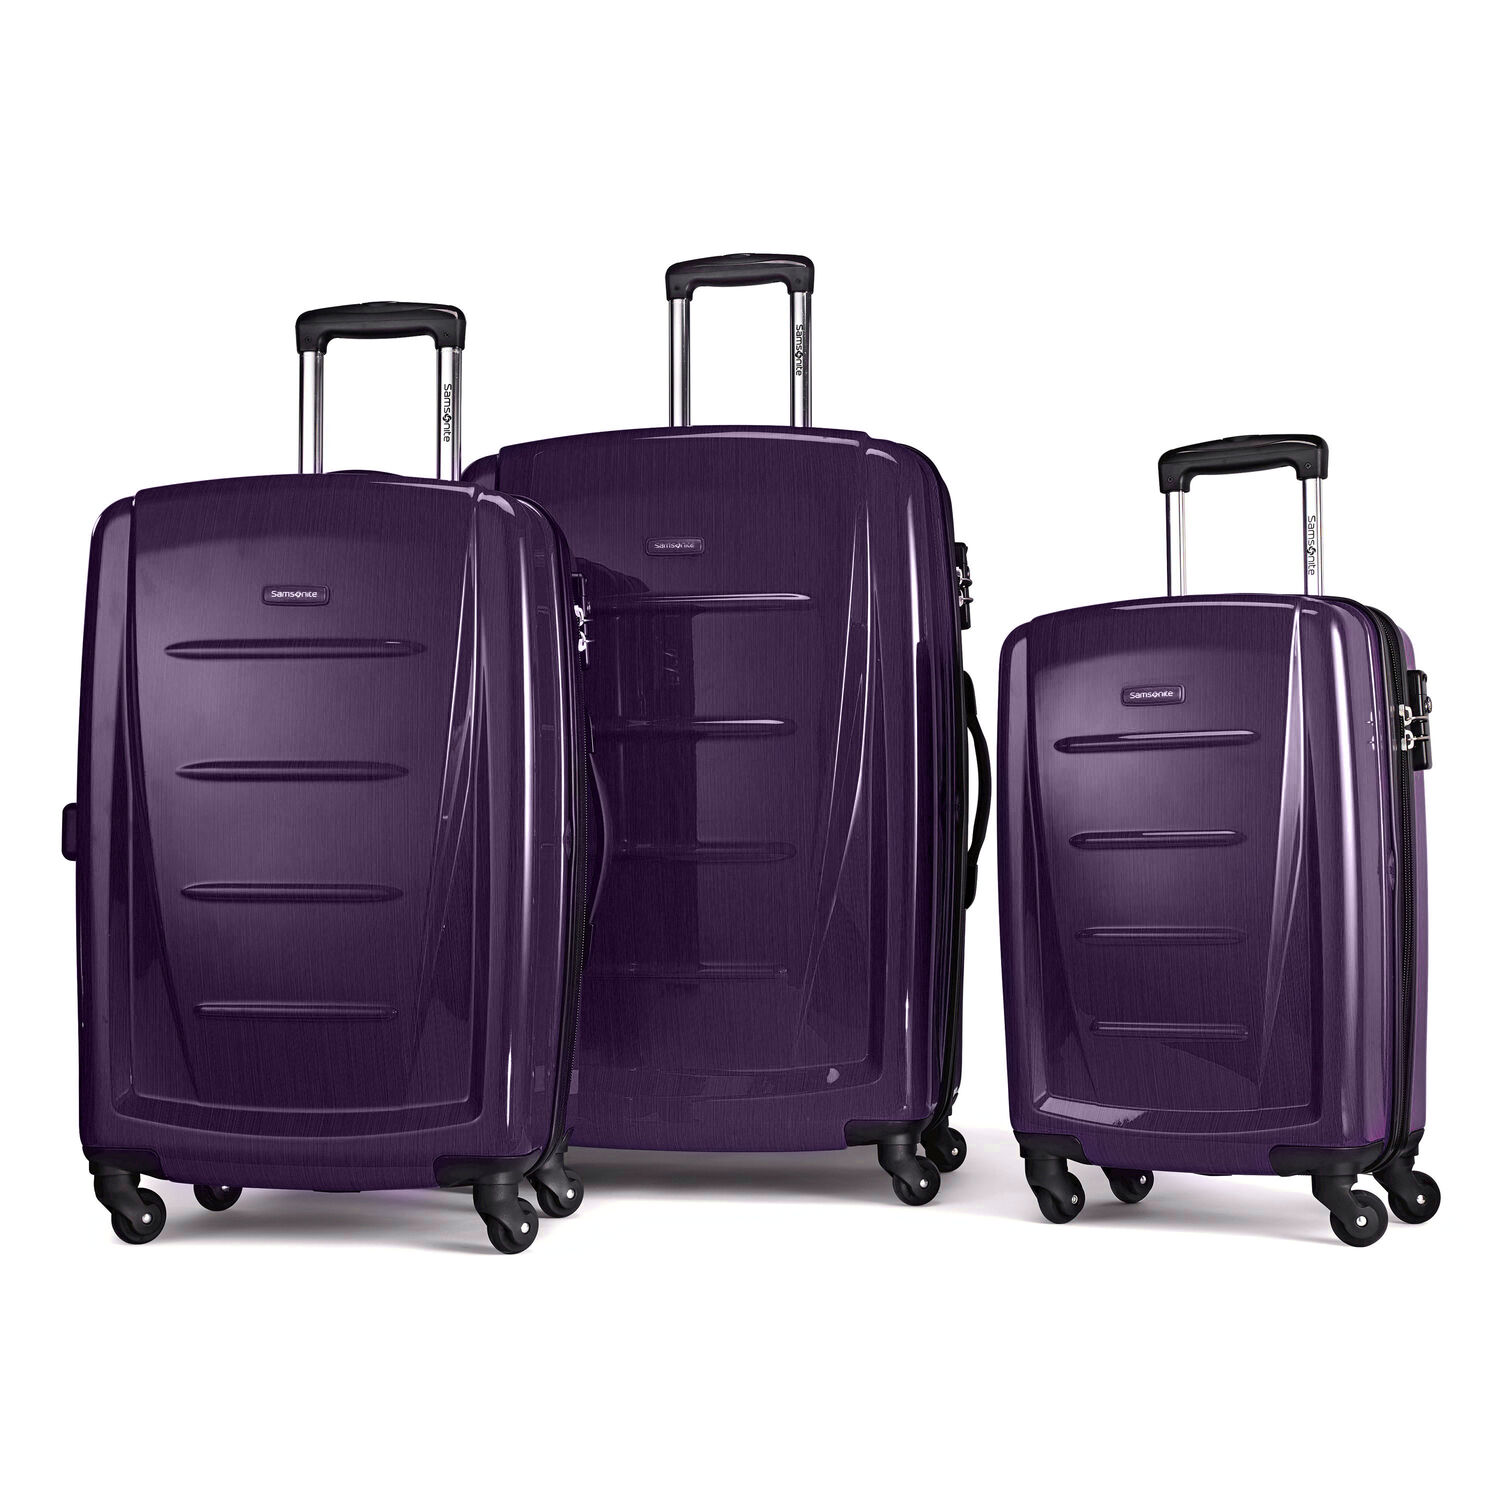 How to set code on samsonite suitcase : Nike offer